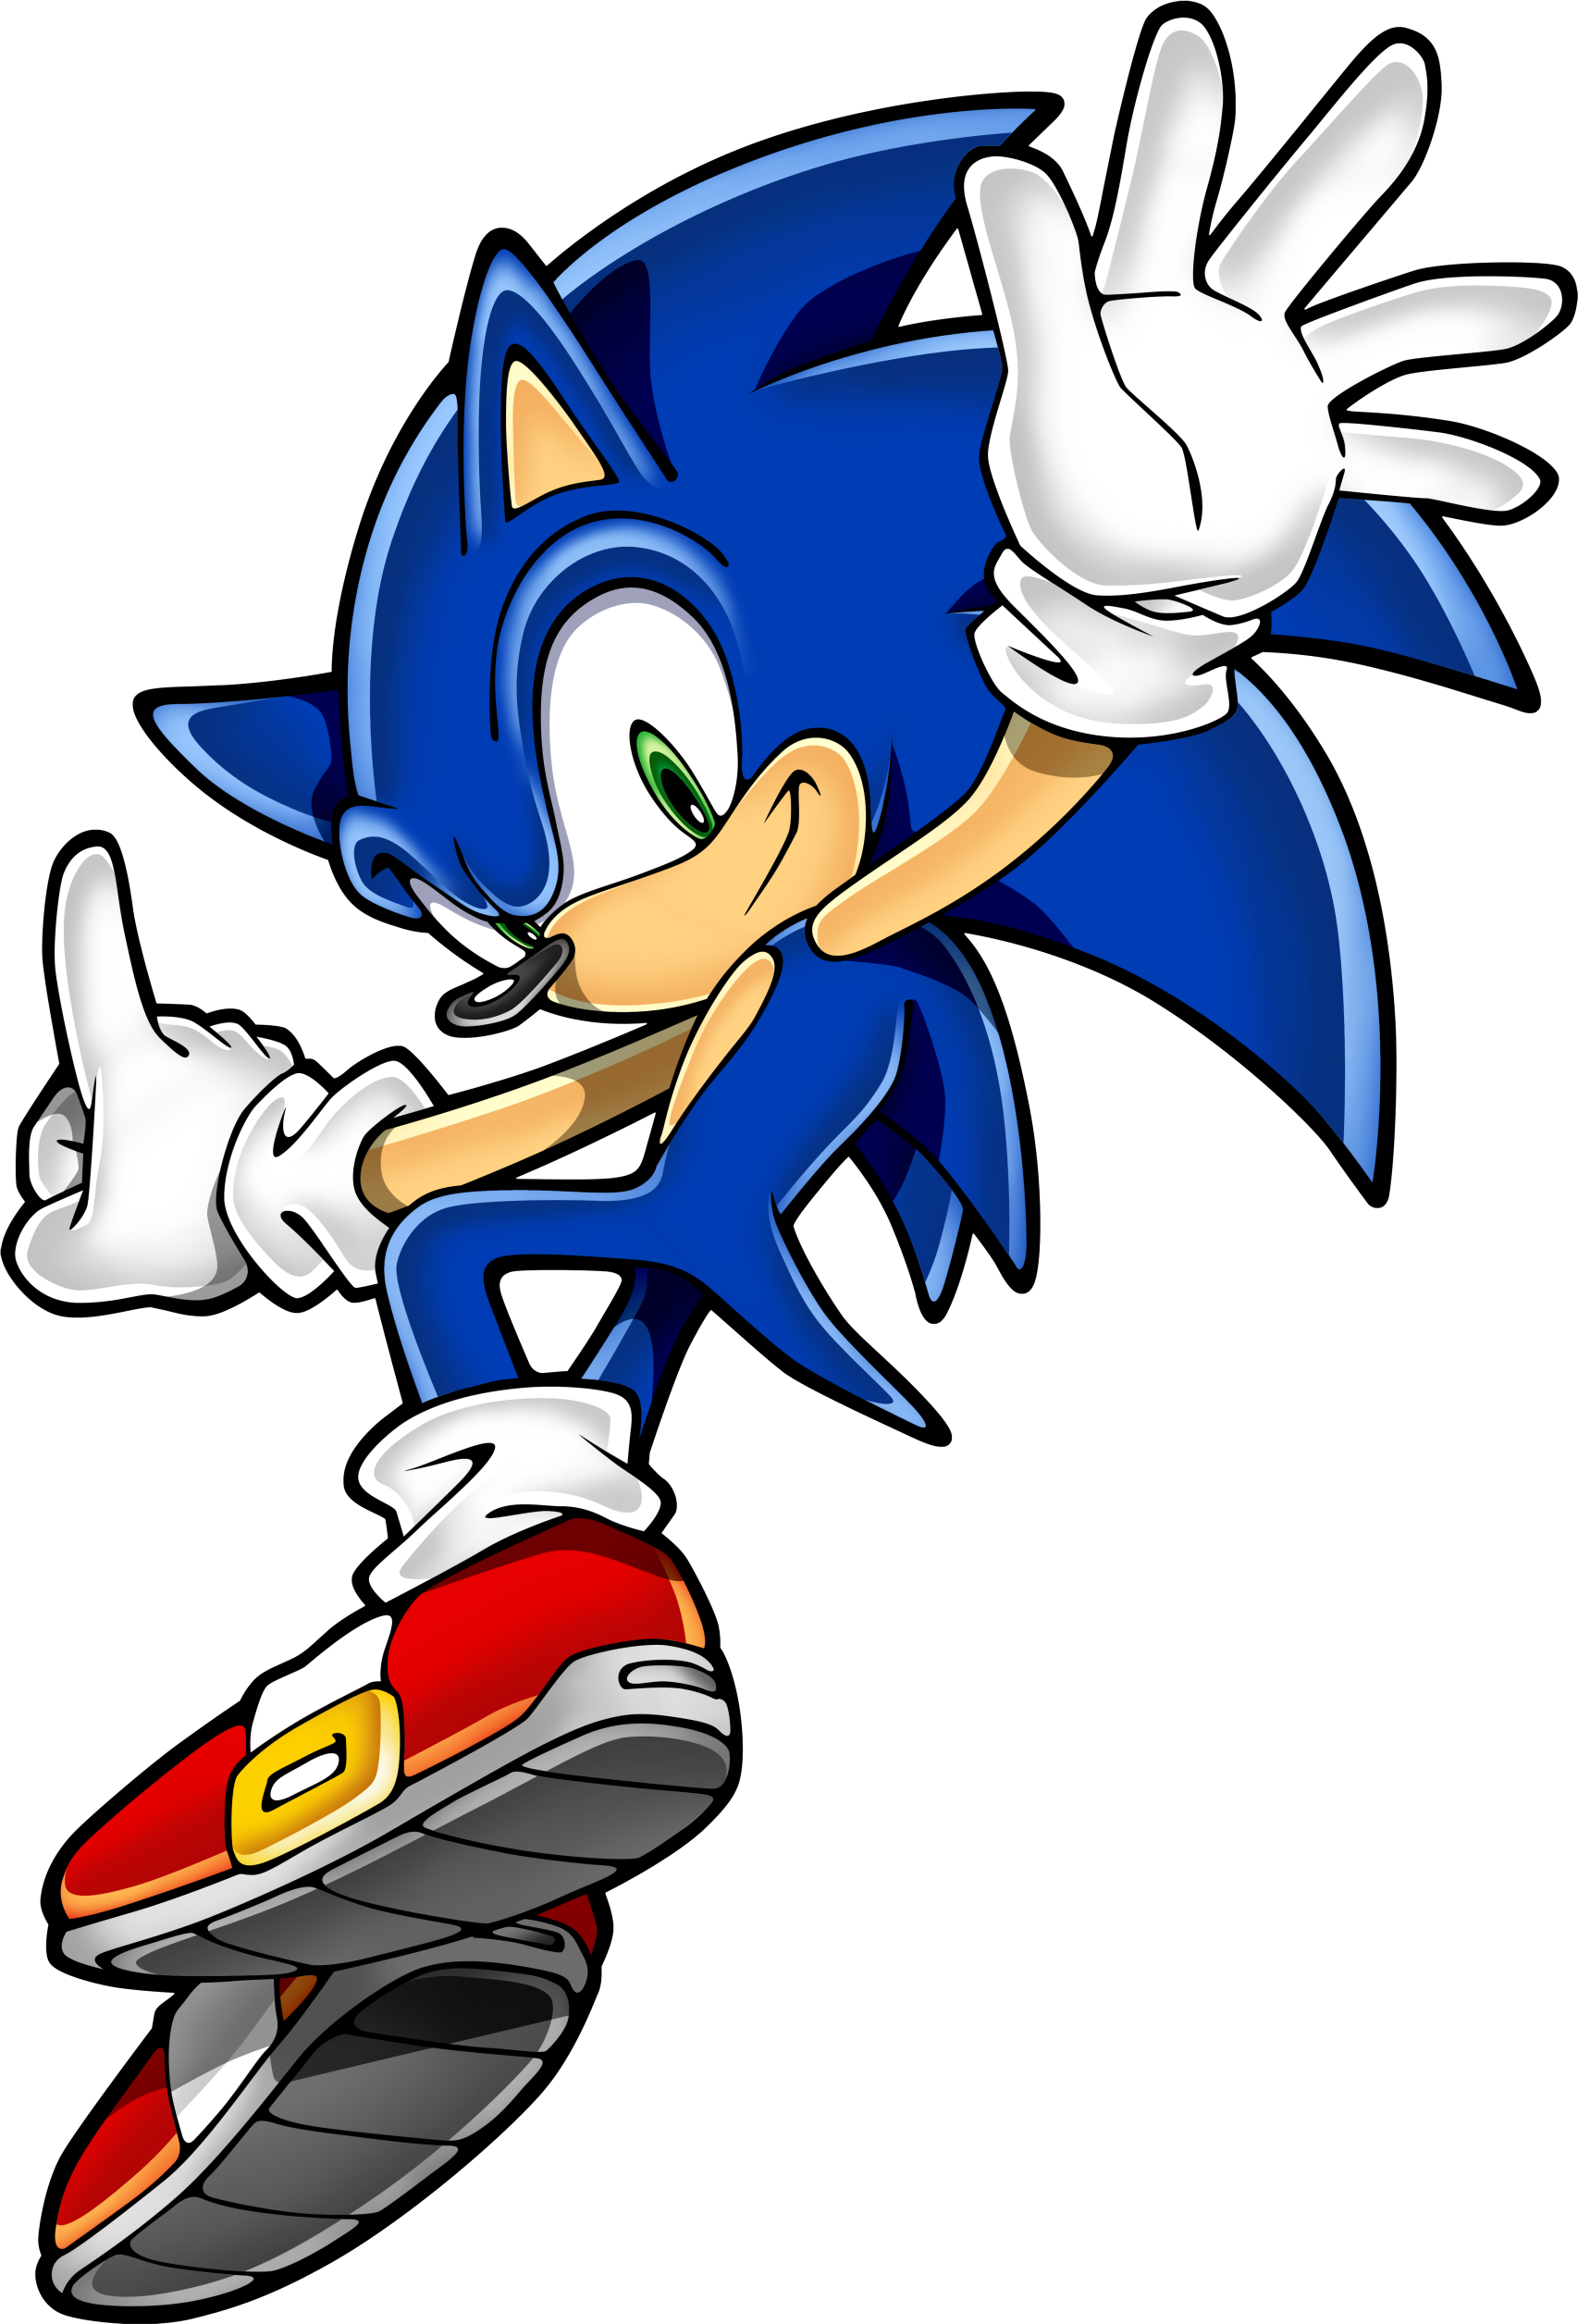 Sonic Art Assets DVD - Sonic The Hedgehog - 11.png - Sonic The Hedgehog PNG